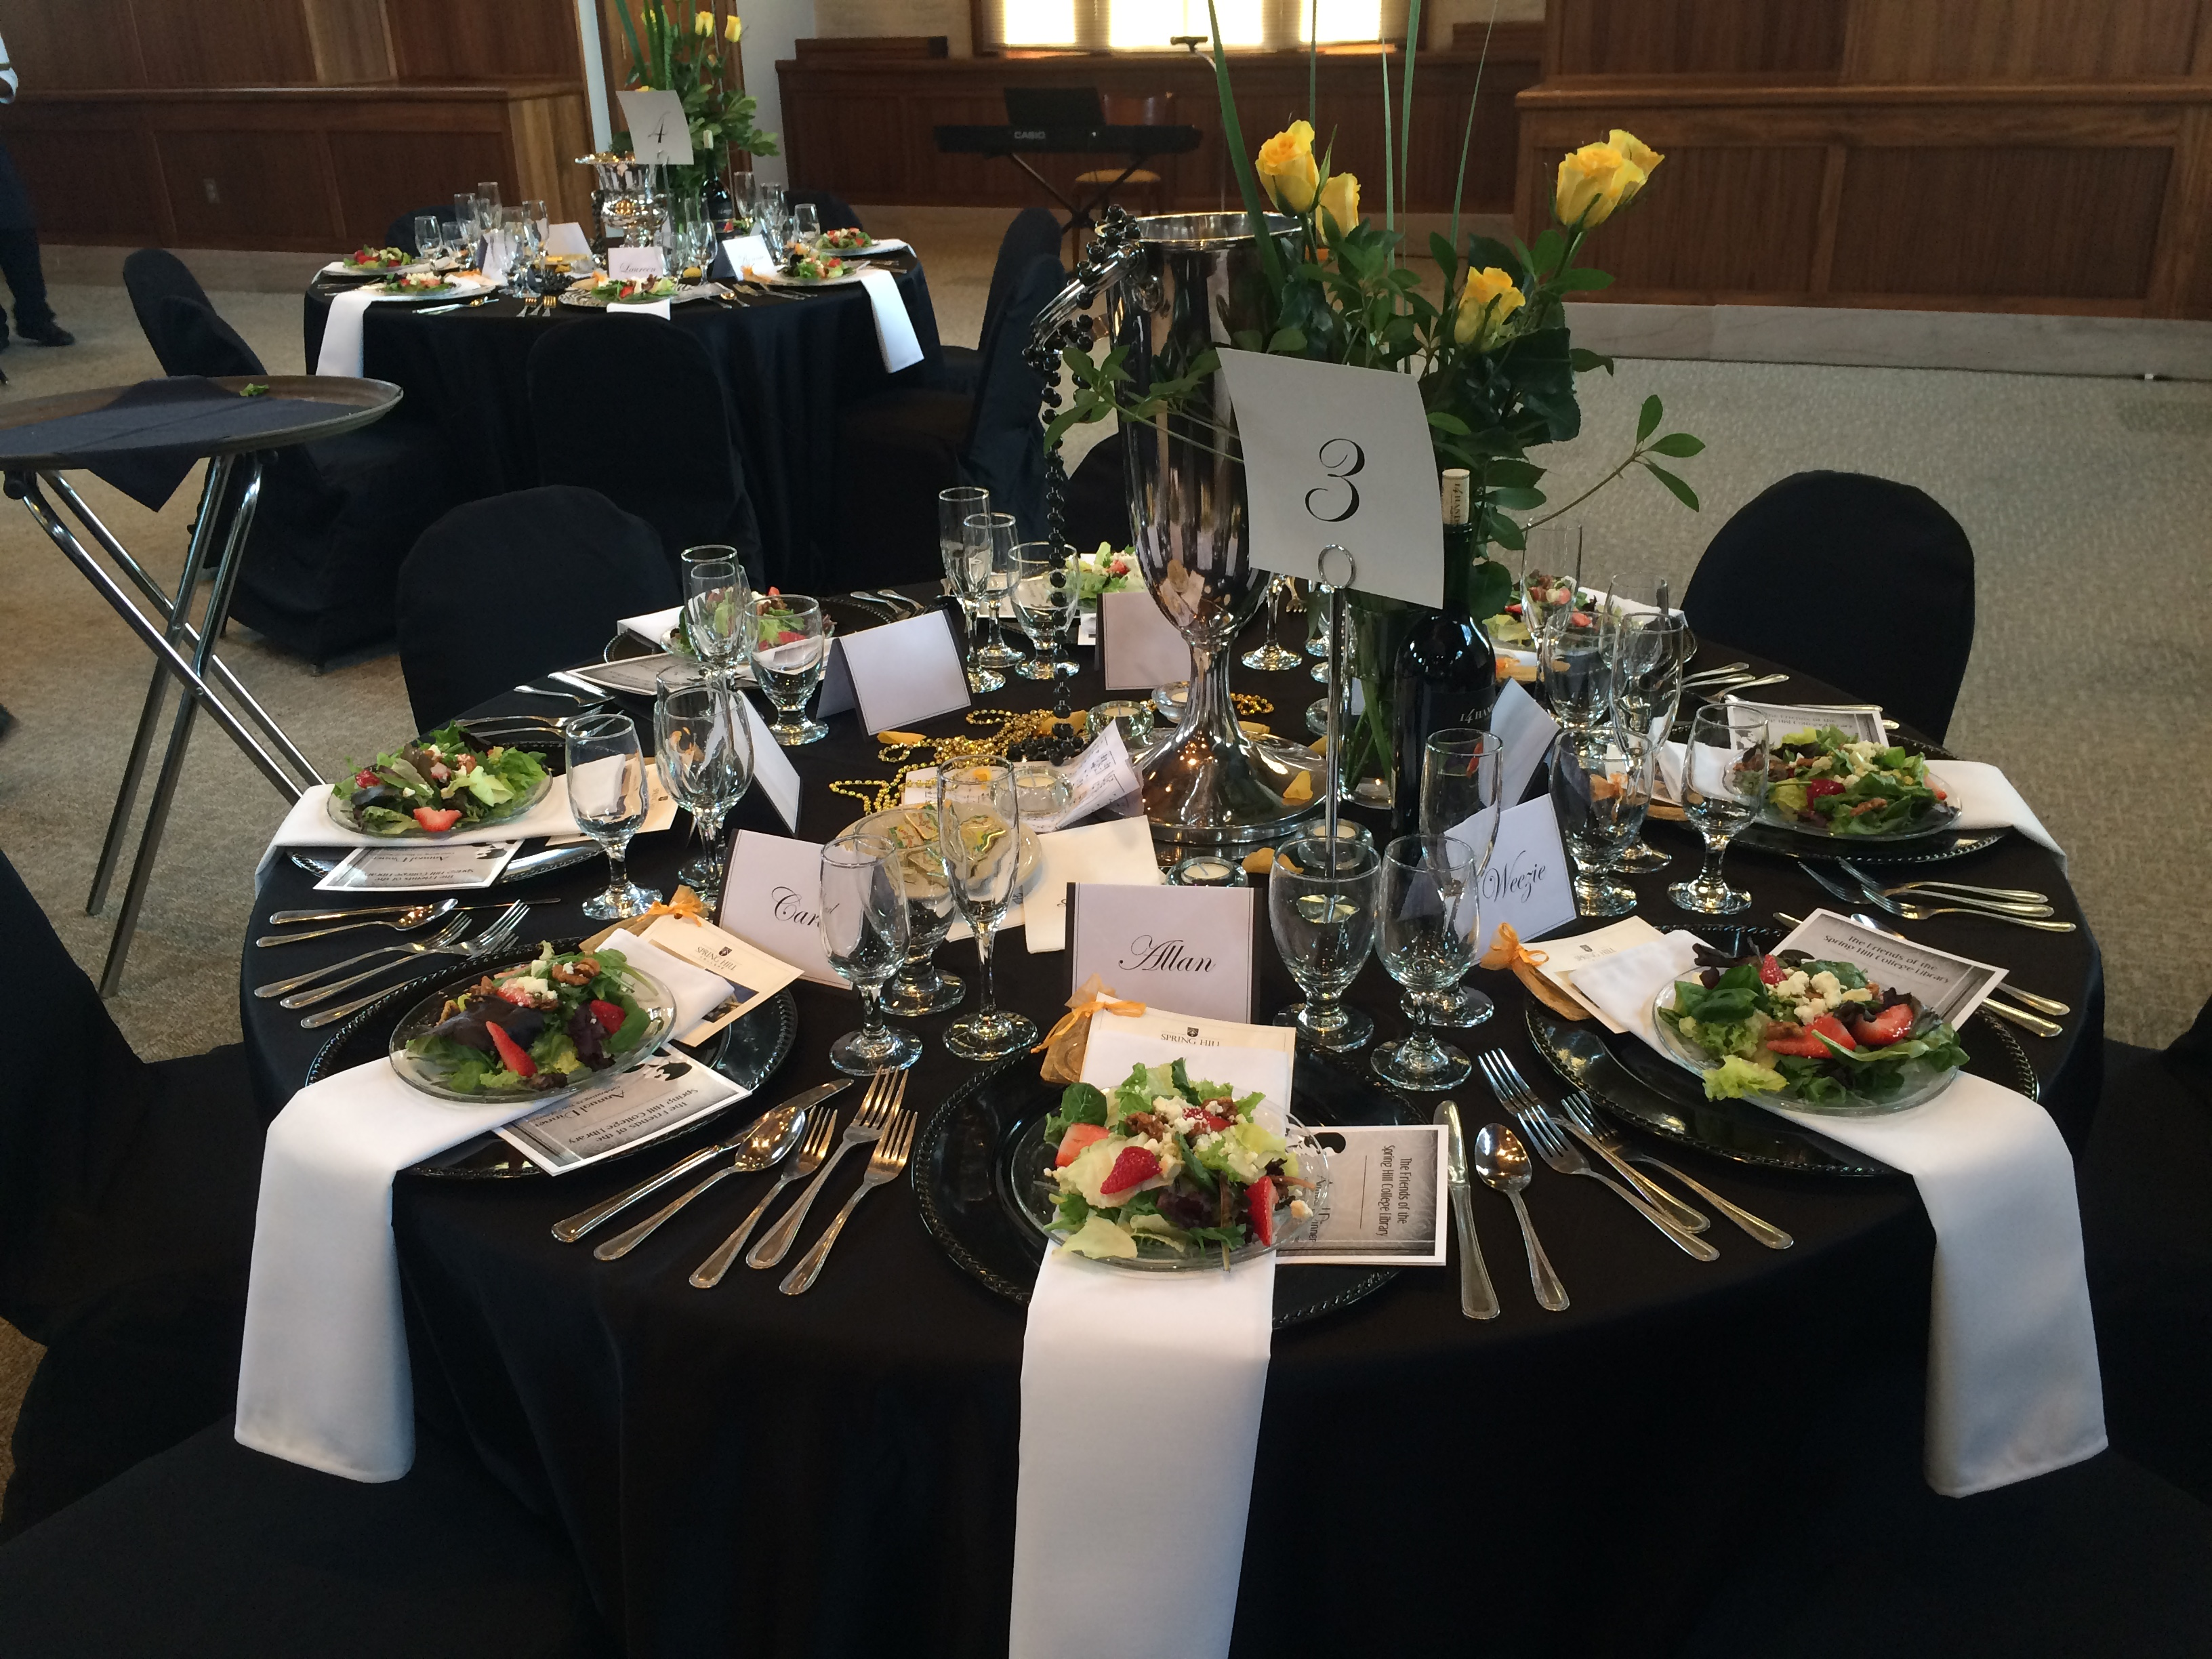 Centerpiece and Table for Annual Dinner 2015